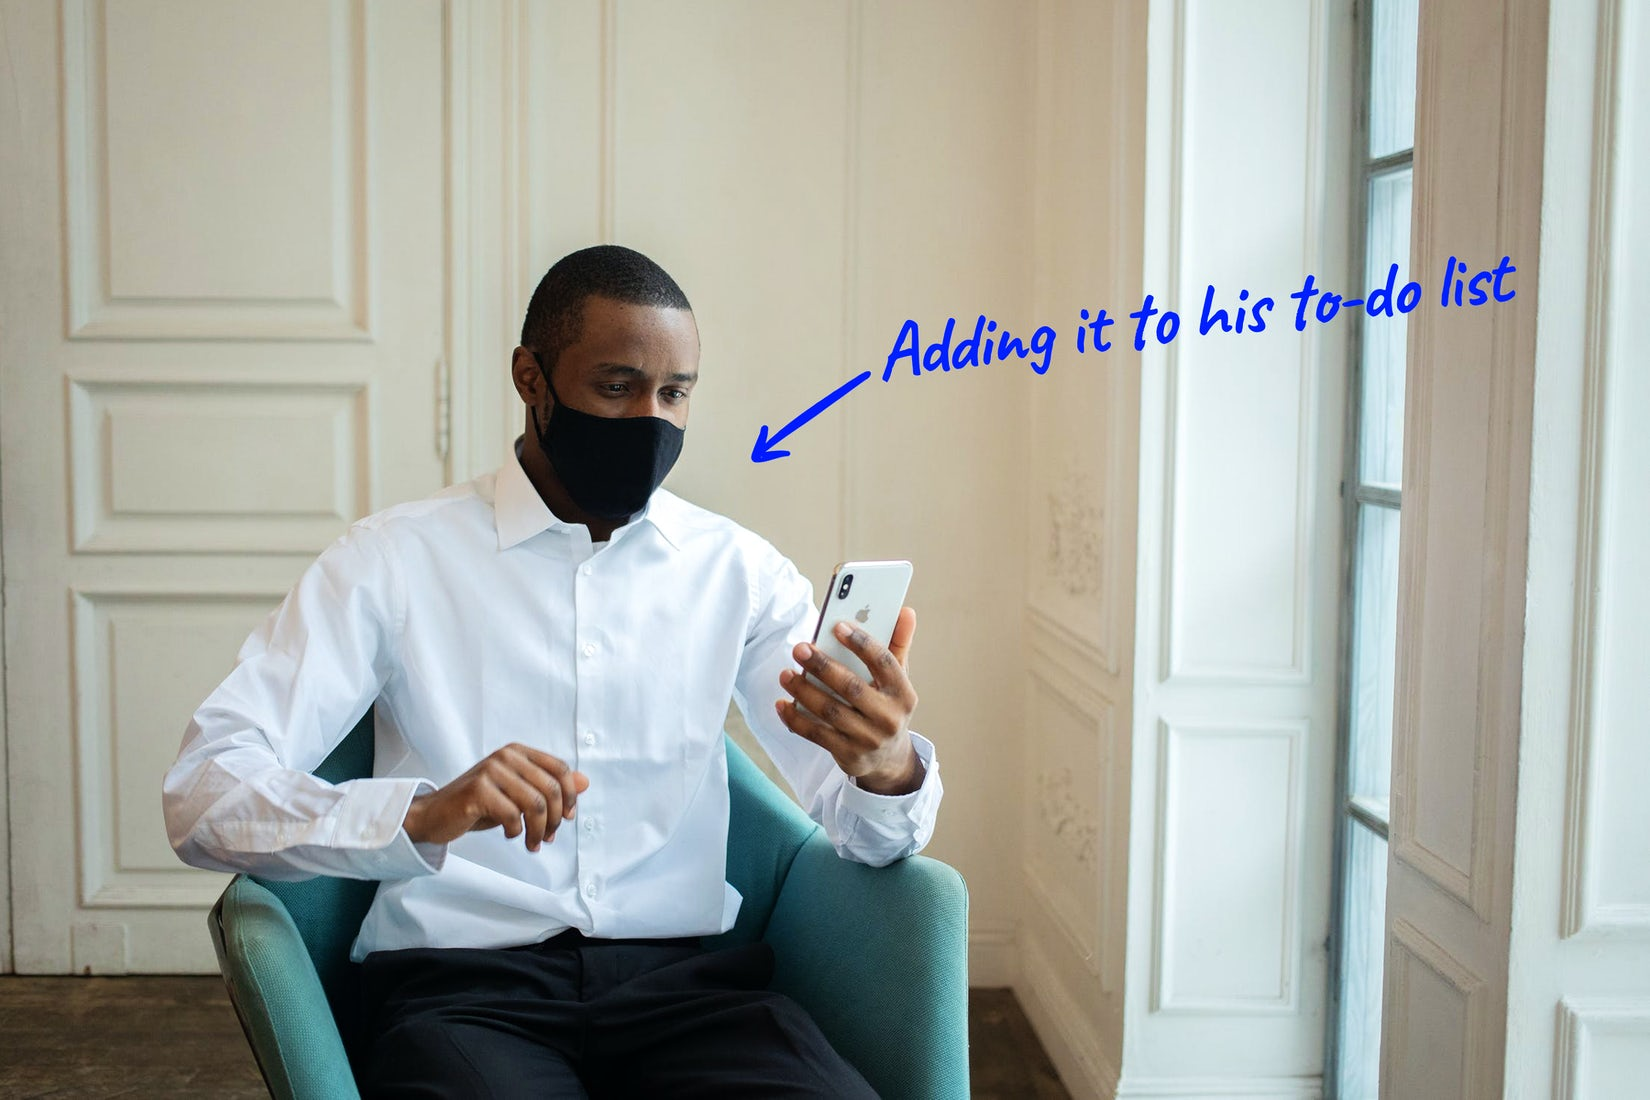 man looking at a smartphone